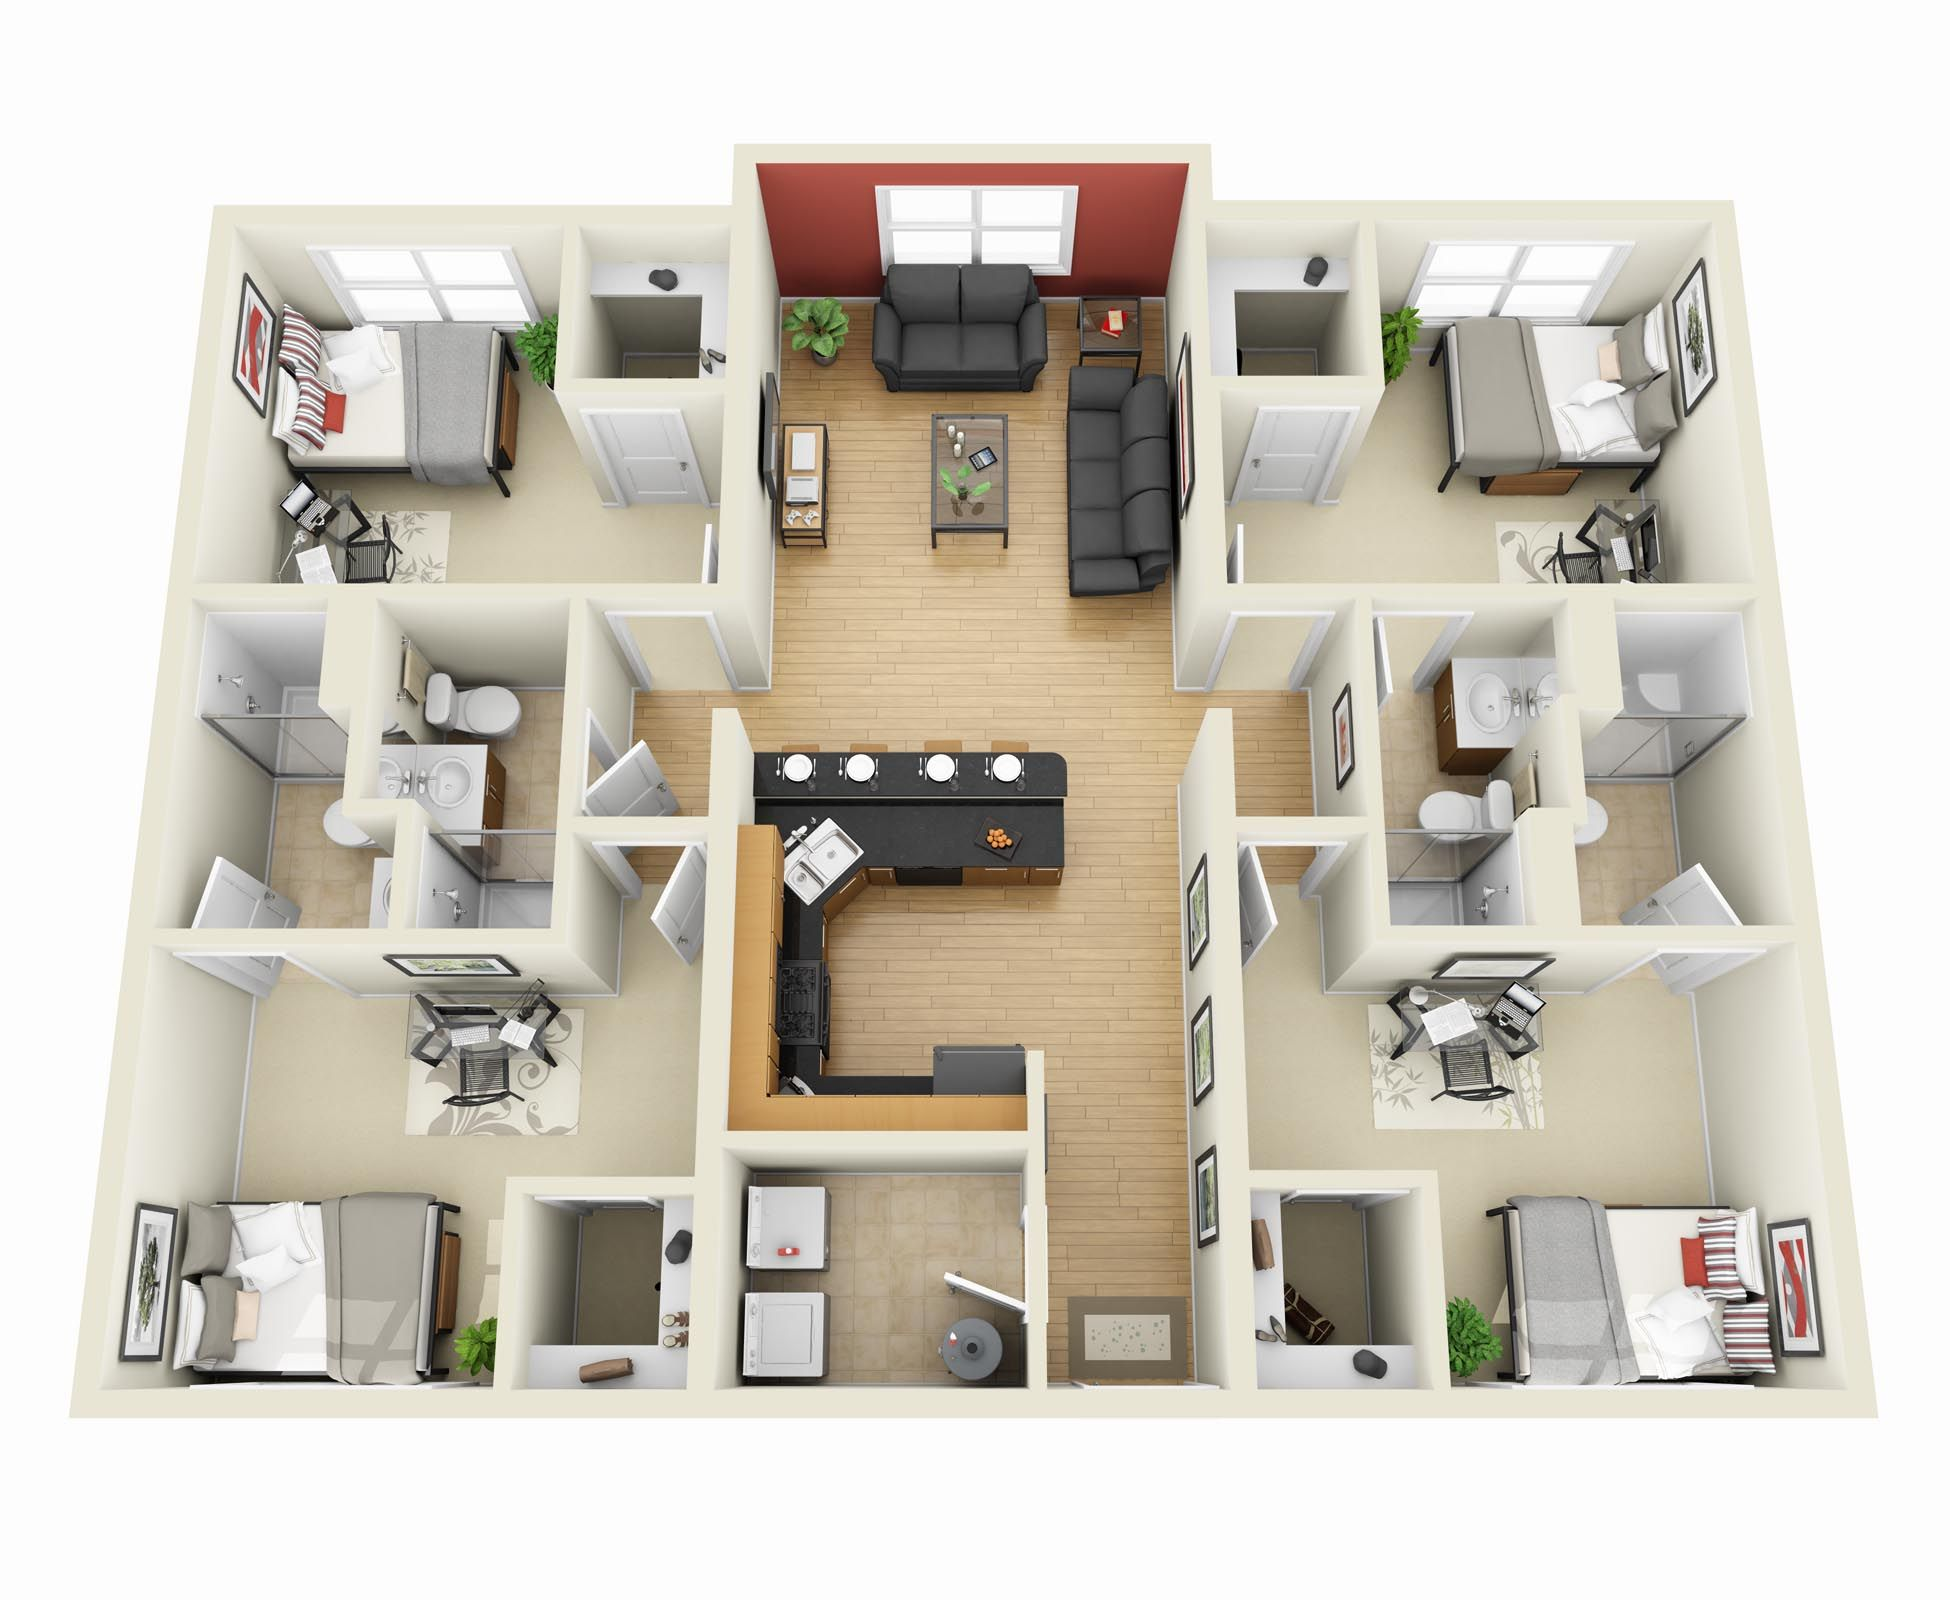 Apartment Room Plan 50 four bedroom apartment/house plans | future home ideas